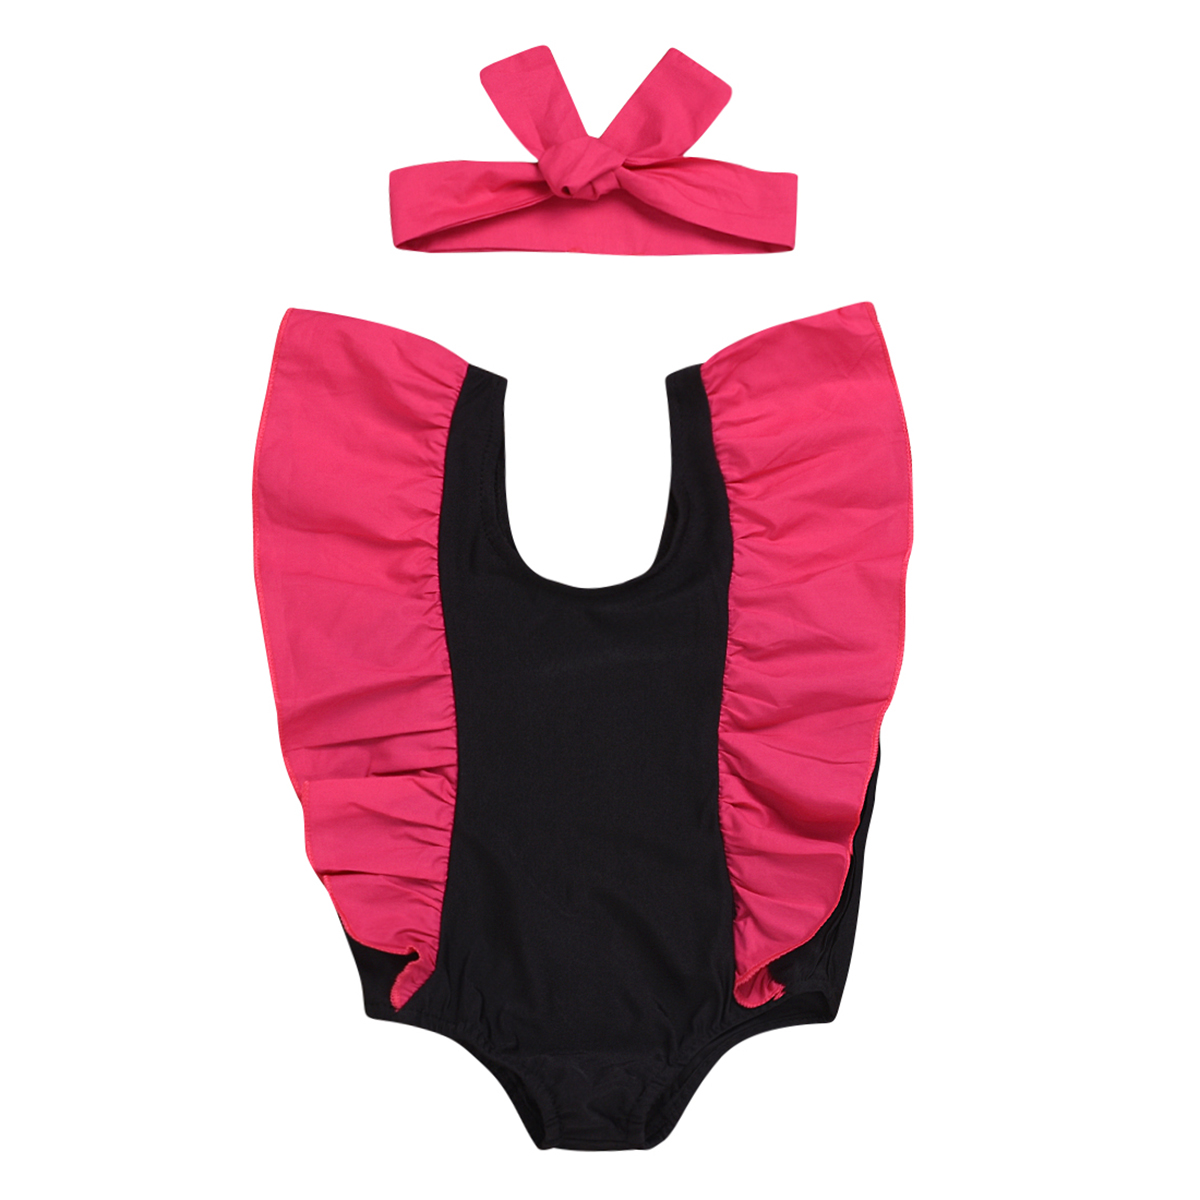 Swimwear For Girls Kid Kids Toddler Baby Girls Ruffled Dot Cross Back Bikini Beach Separate Swimsuit Bathing Swimwear D300221 Swimwear